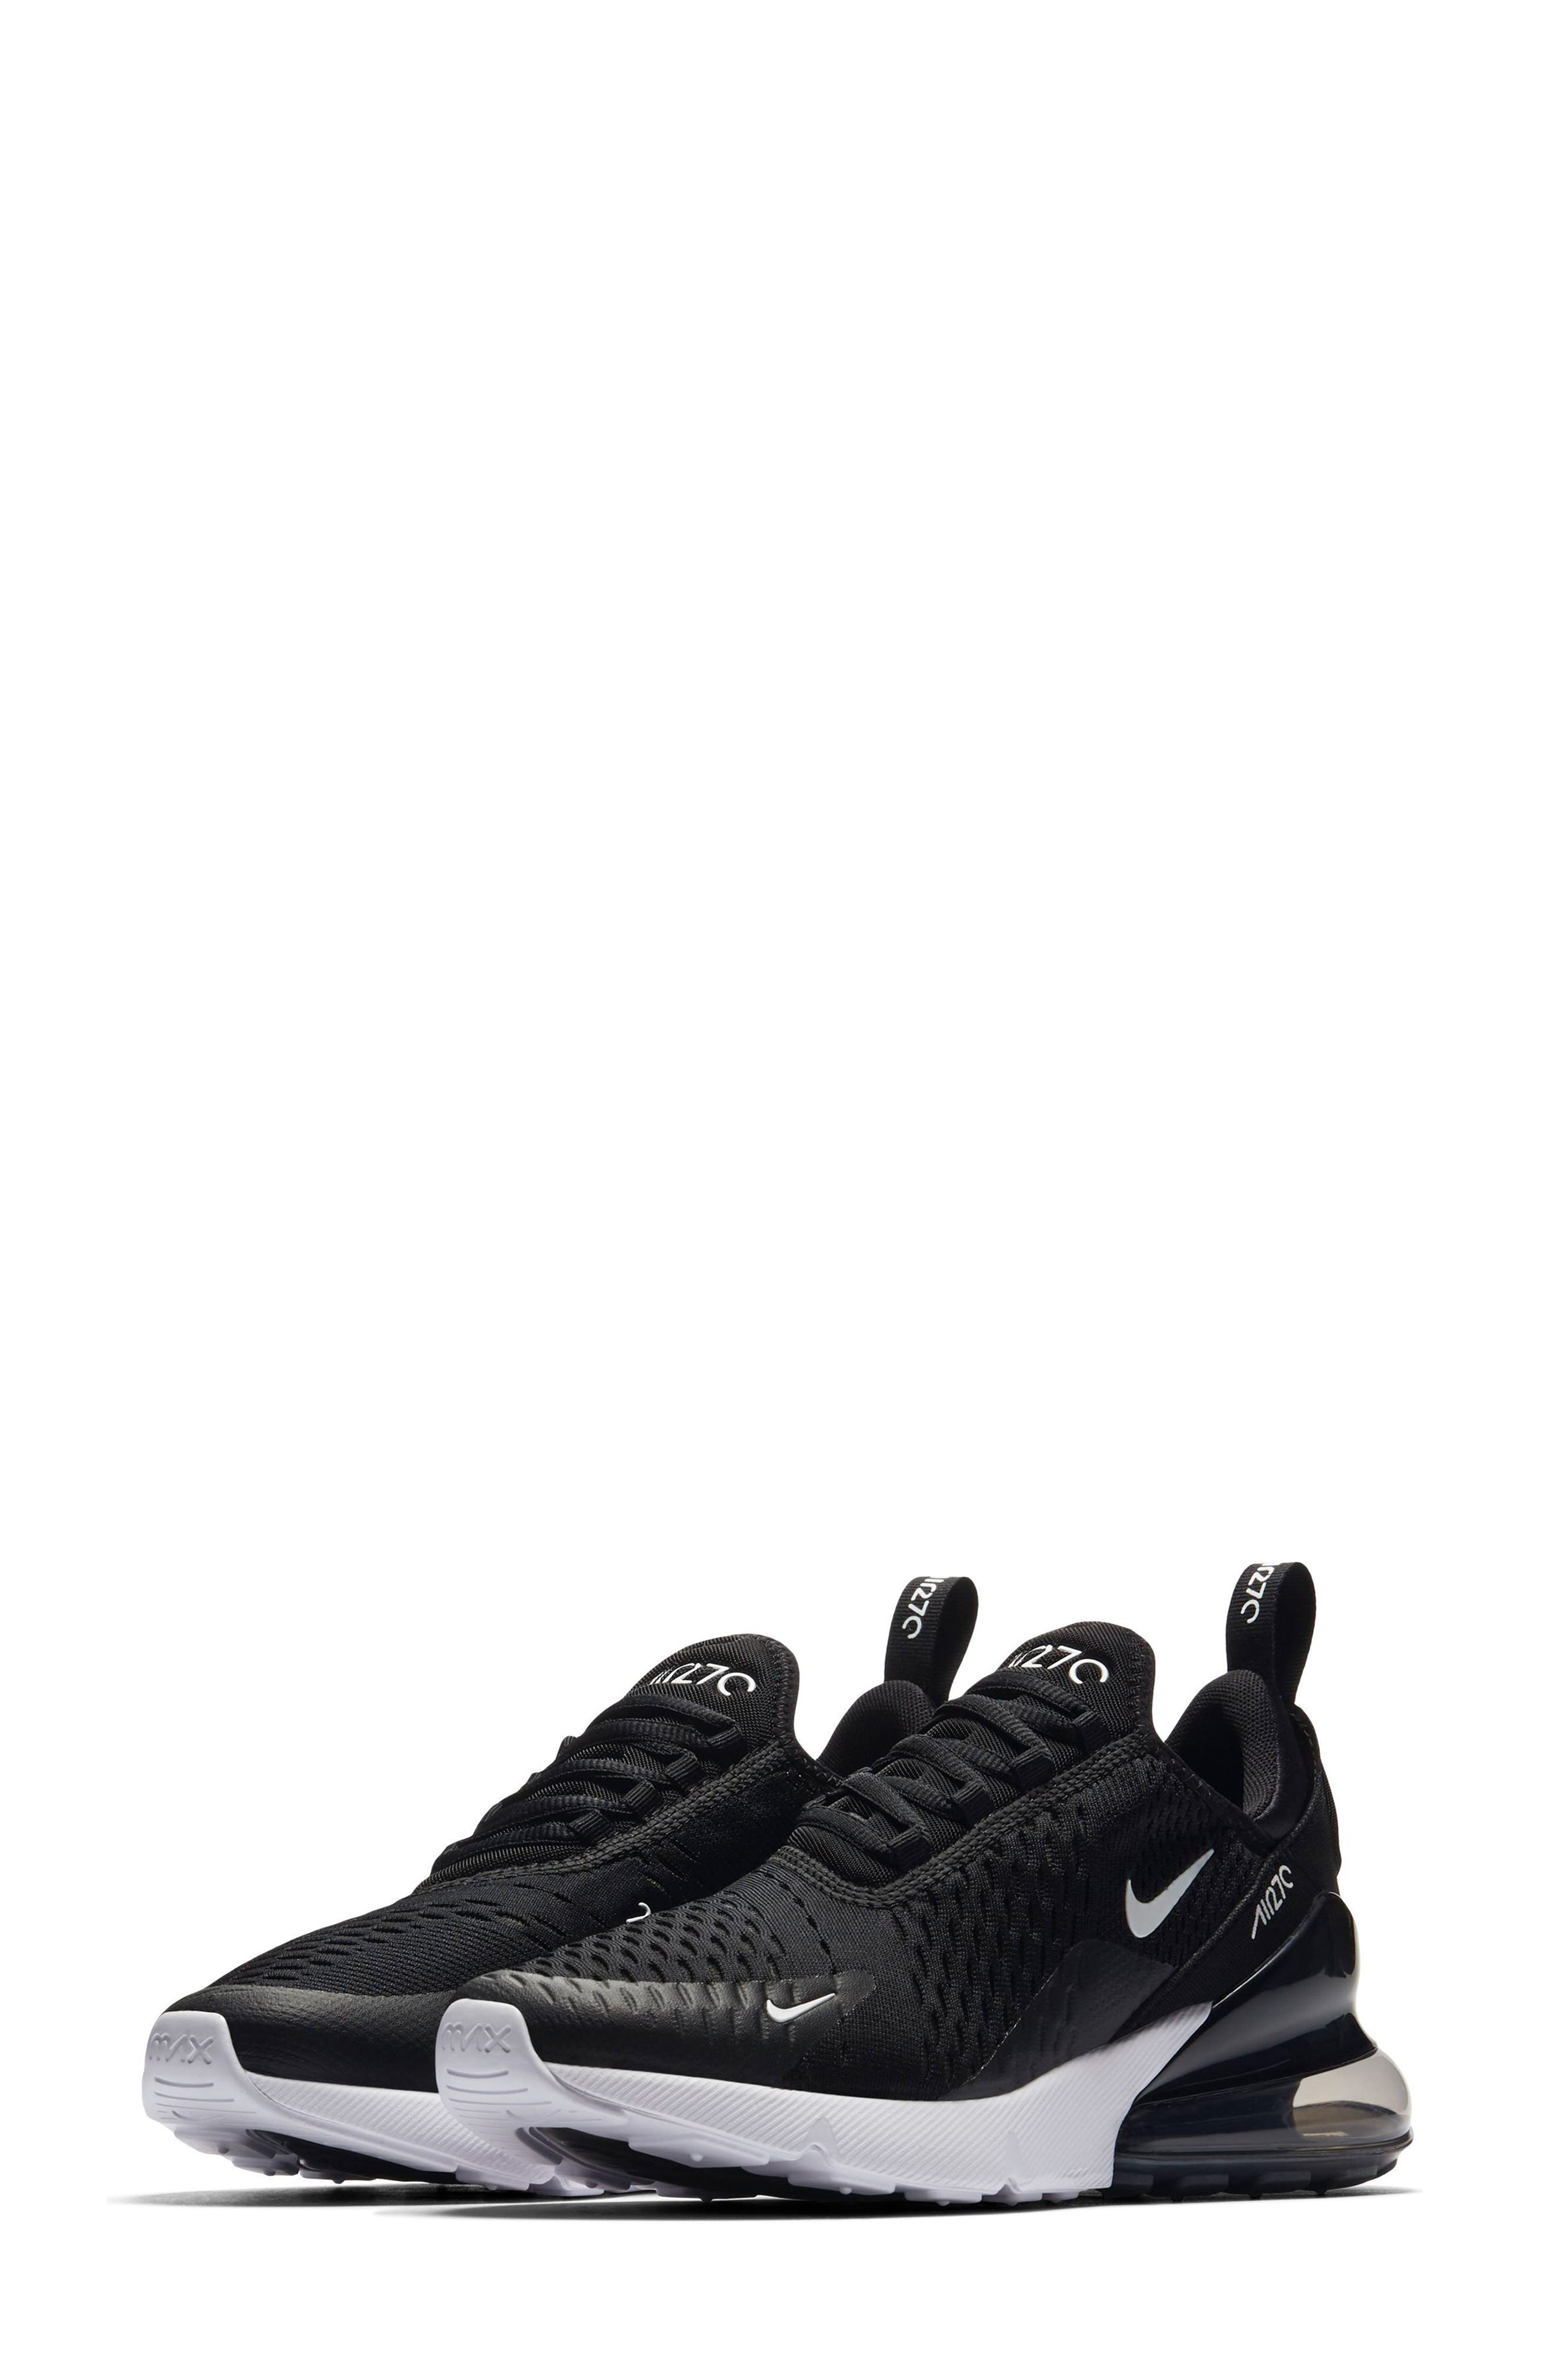 Air Max 270 Sneaker,                         Main,                         color, BLACK/ ANTHRACITE/ WHITE